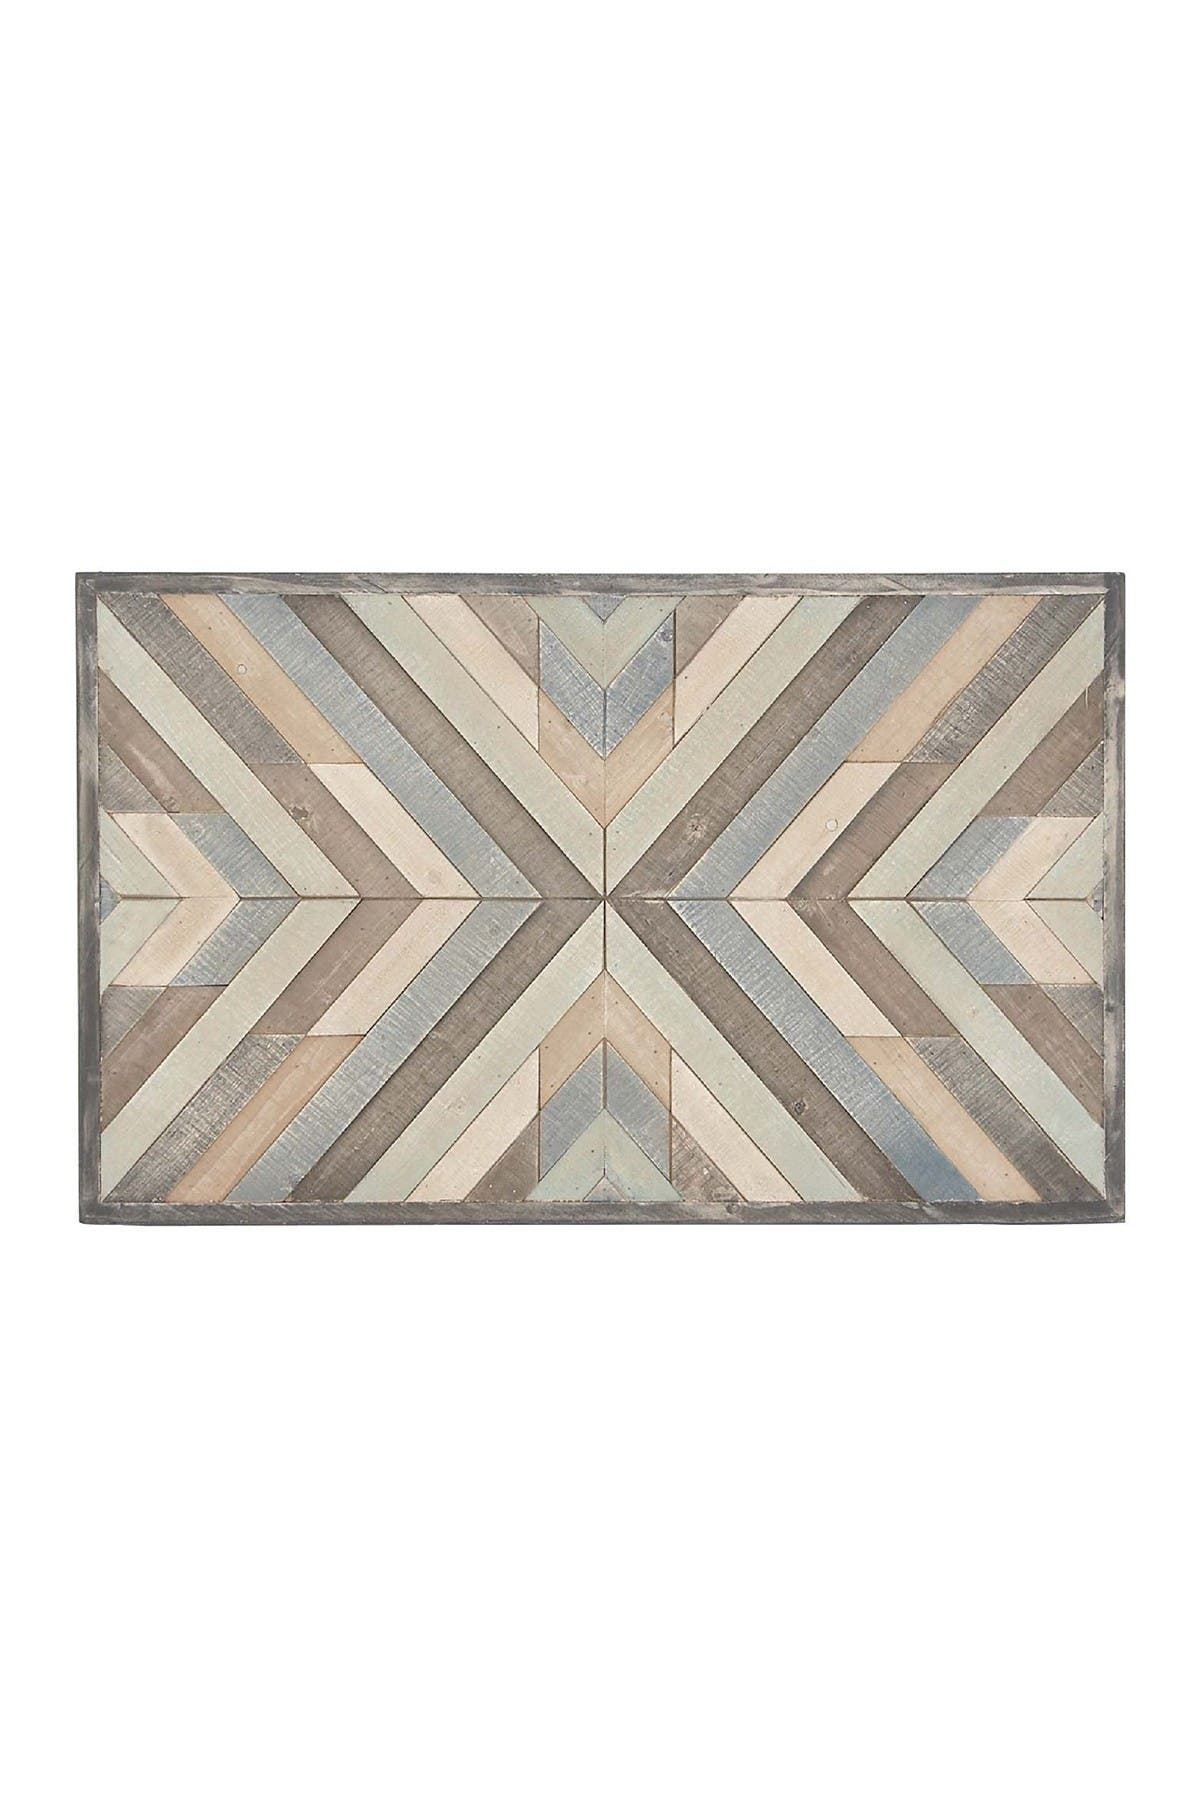 Image of Willow Row Multi Rustic Chevron Wall Art